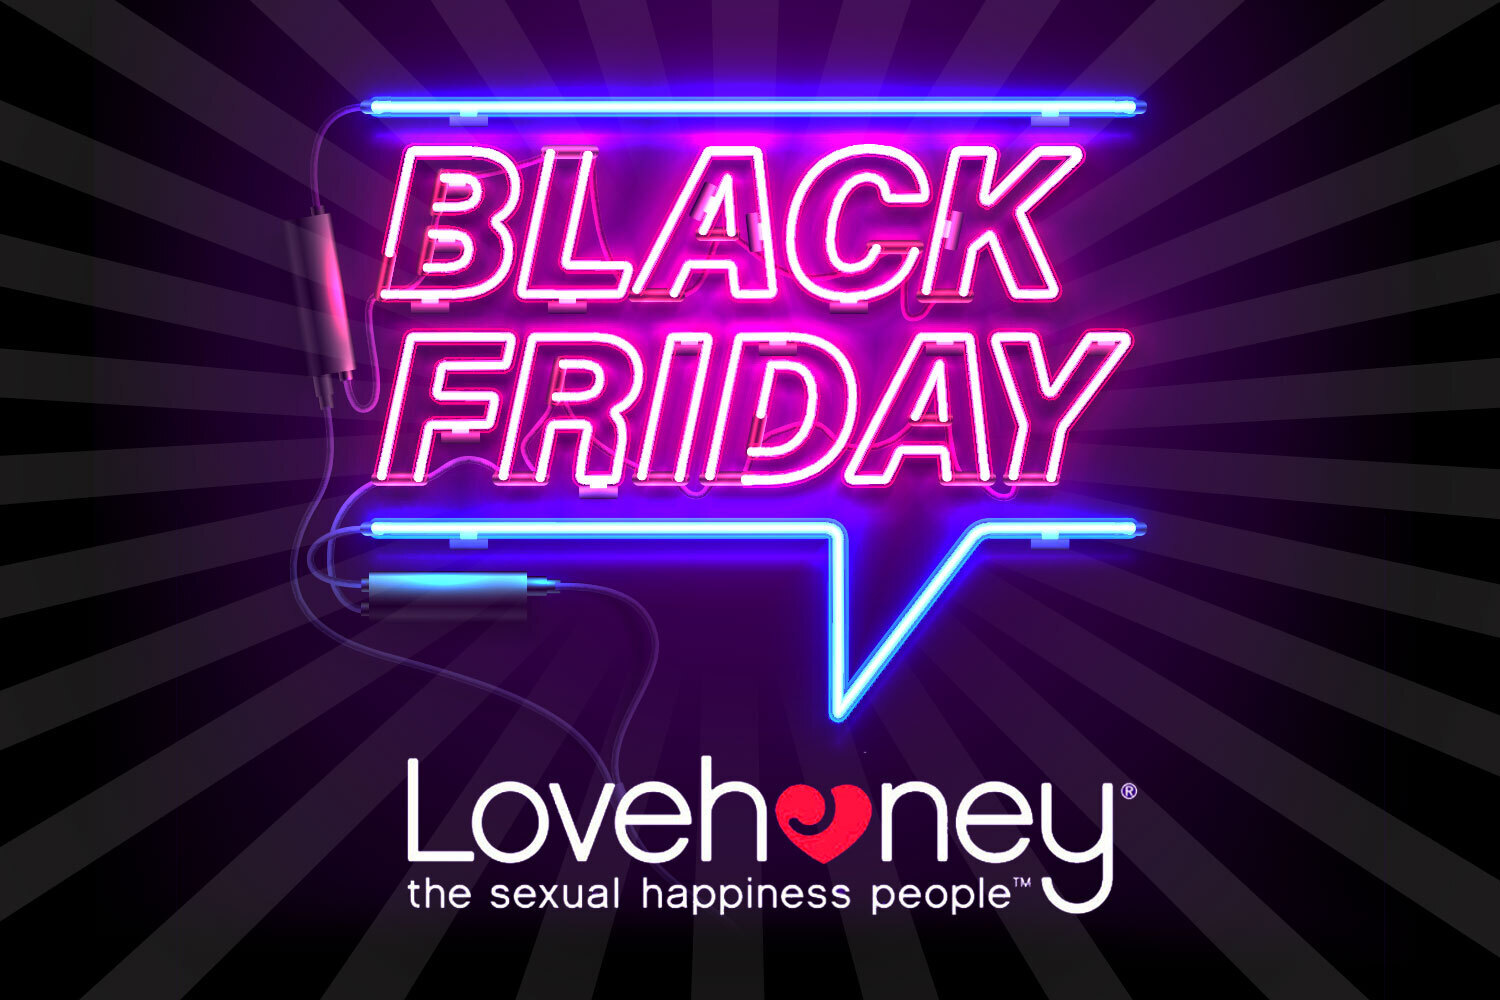 Lovehoney S Black Friday Sale 2020 Up To 50 Off Sex Toys Until Cyber Monday With Deals On Womaniser And We Vibe